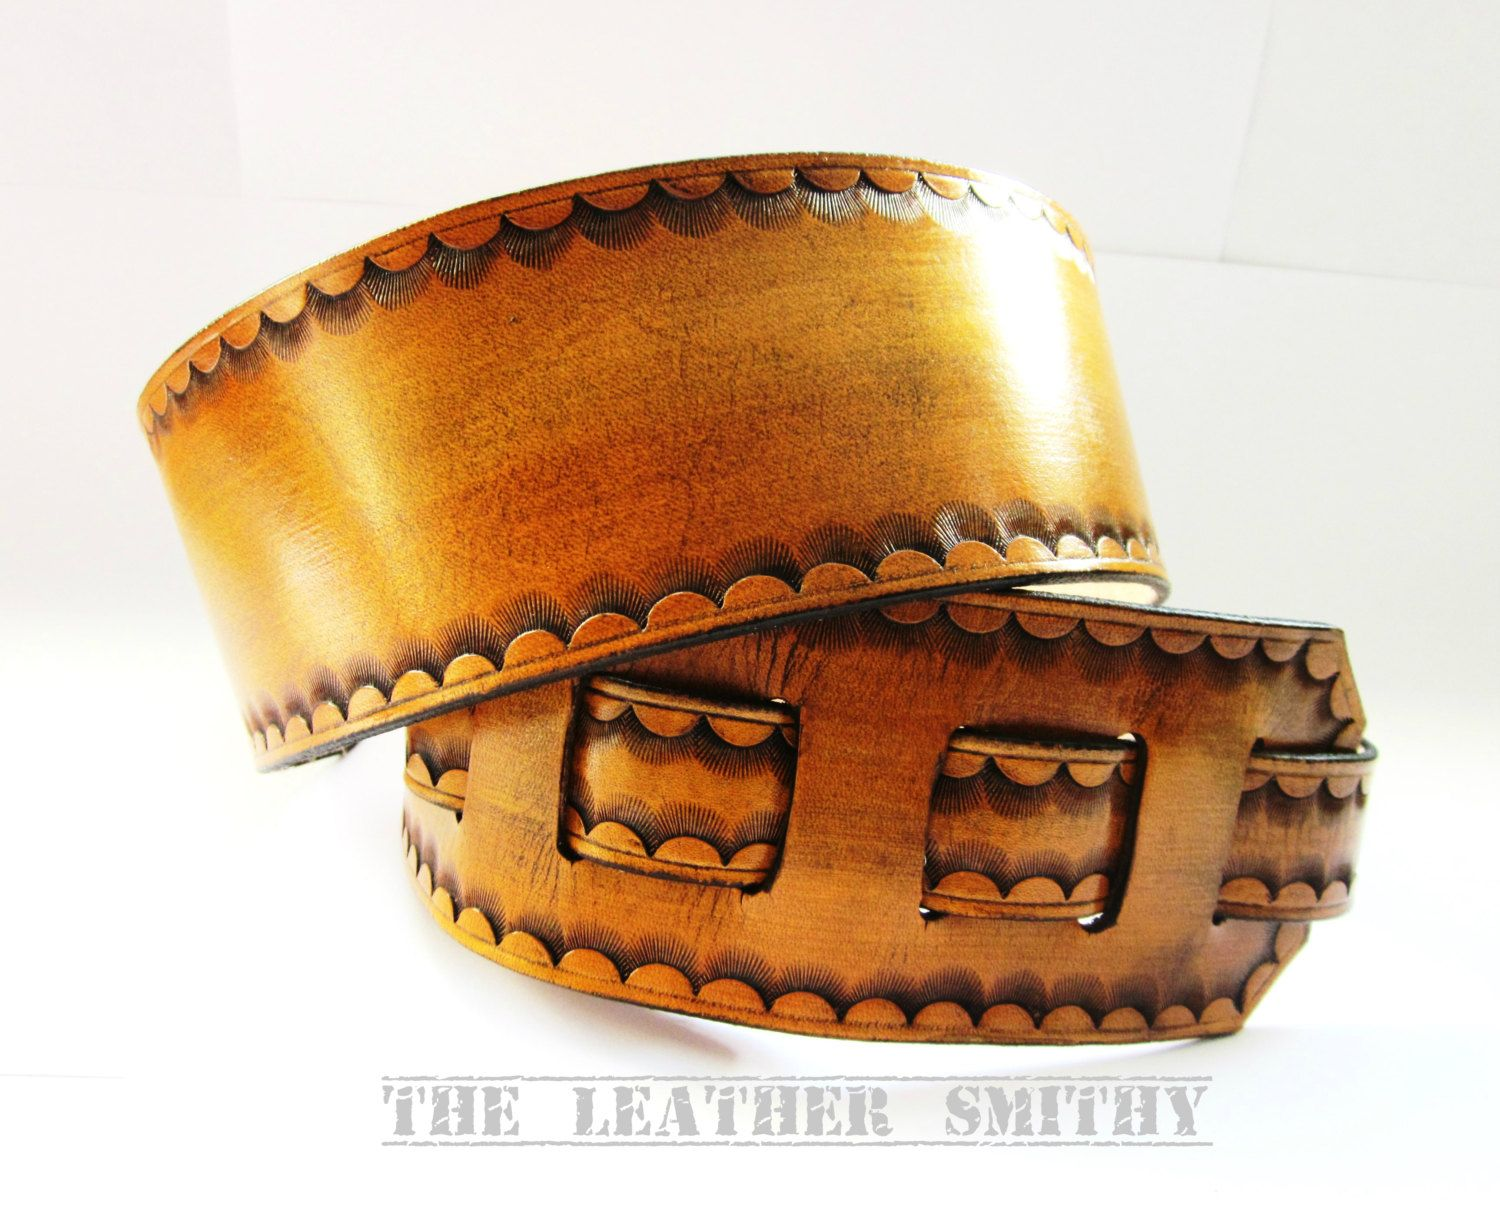 Tan Leather Guitar Strap with Hand Tooled Edge Handmade Guitar Straps